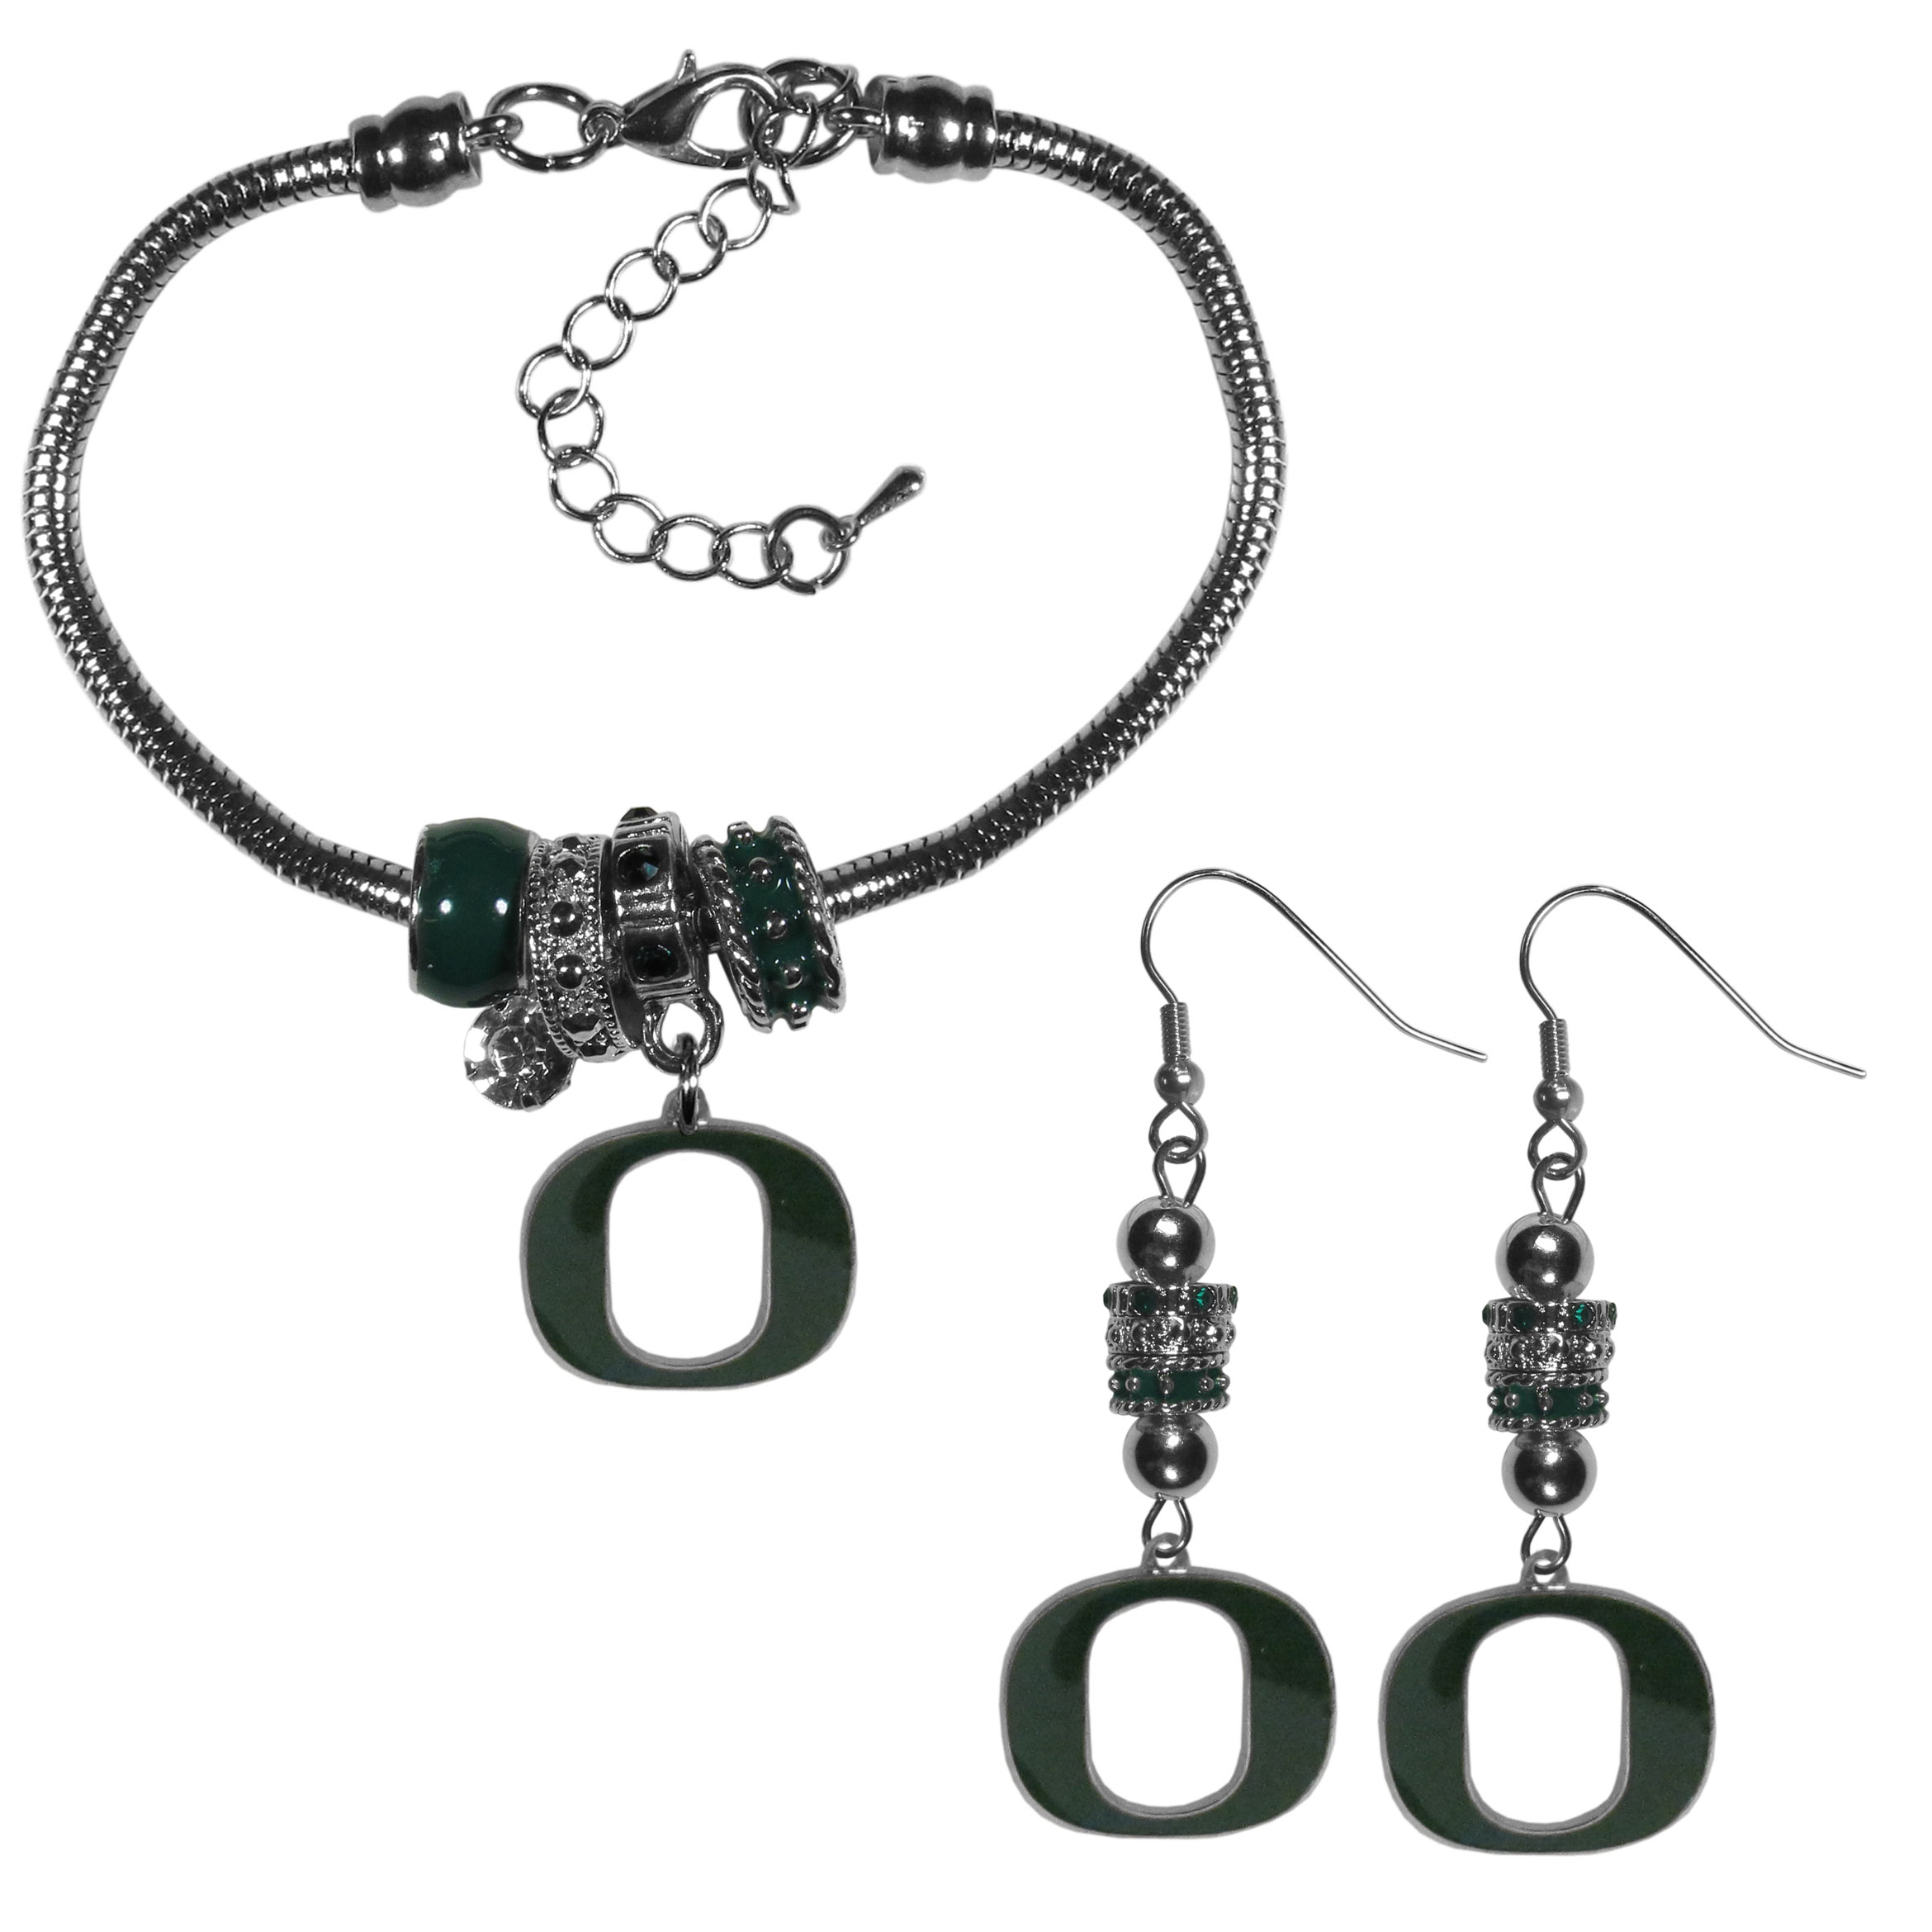 Oregon Ducks Euro Bead Earrings and Bracelet Set - We combine the popular Euro bead style with your love of the Oregon Ducks with this beautiful jewelry set that includes earrings and a matching bracelet. The stylish earrings feature hypoallergenic, nickel free fishhook posts and 3 team colored Euro beads and a metal team charm. The matching snake chain bracelet is 7.5 inches long with a 2 inch extender and 4 Euro beads with a rhinestone charm and team charm.